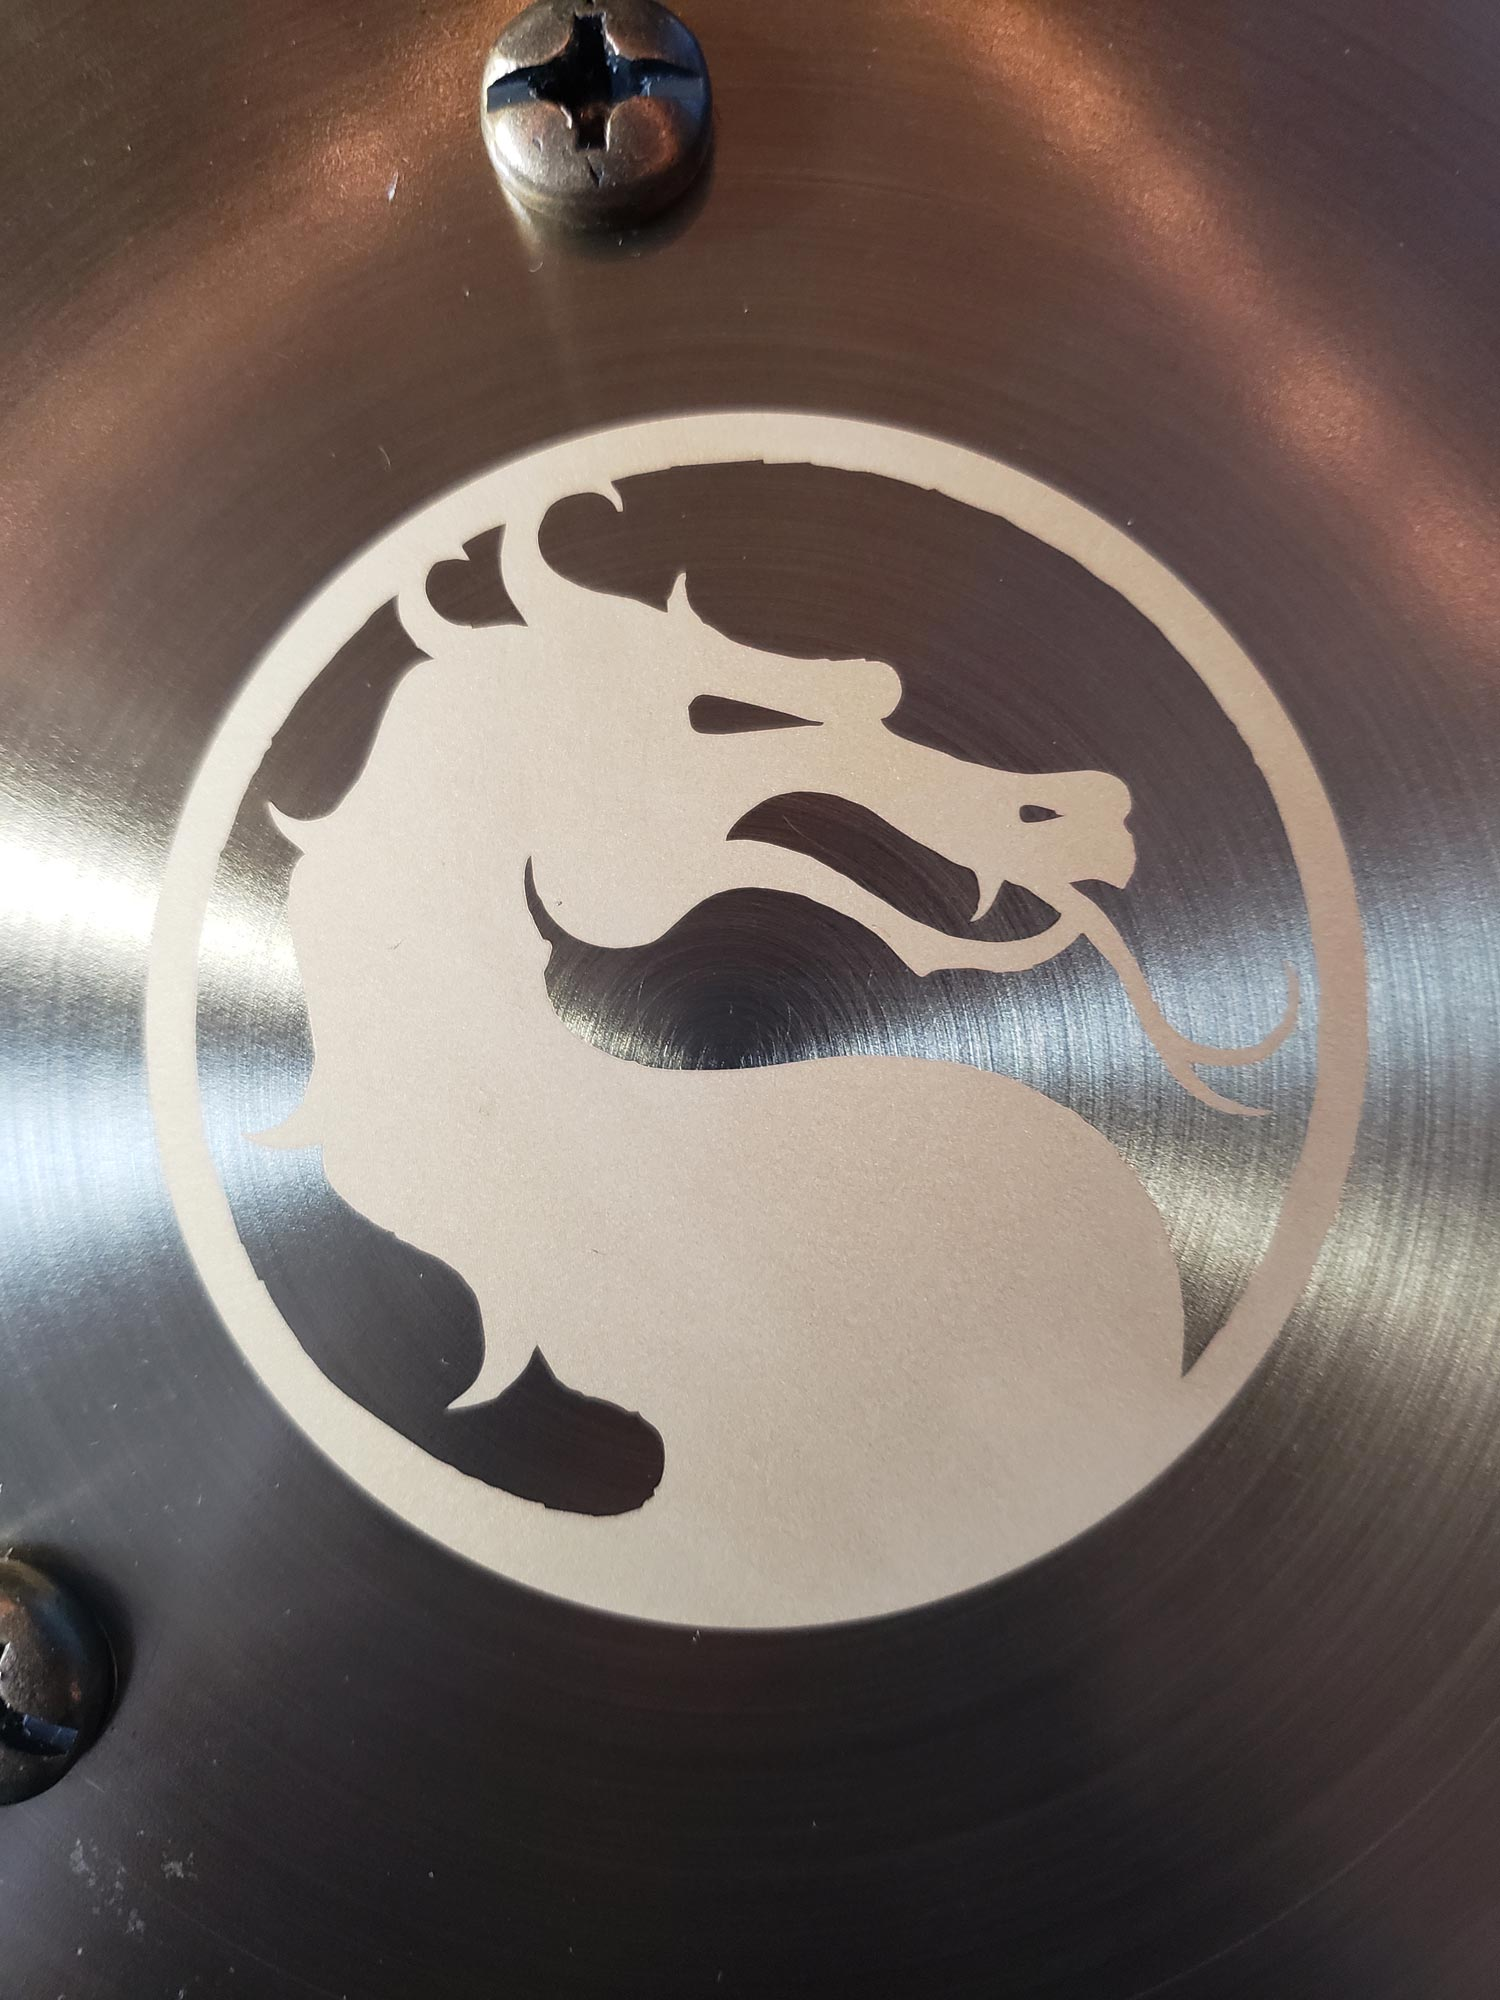 Mortal Kombat 11 reveal day event gift 4 out of 5 image gallery